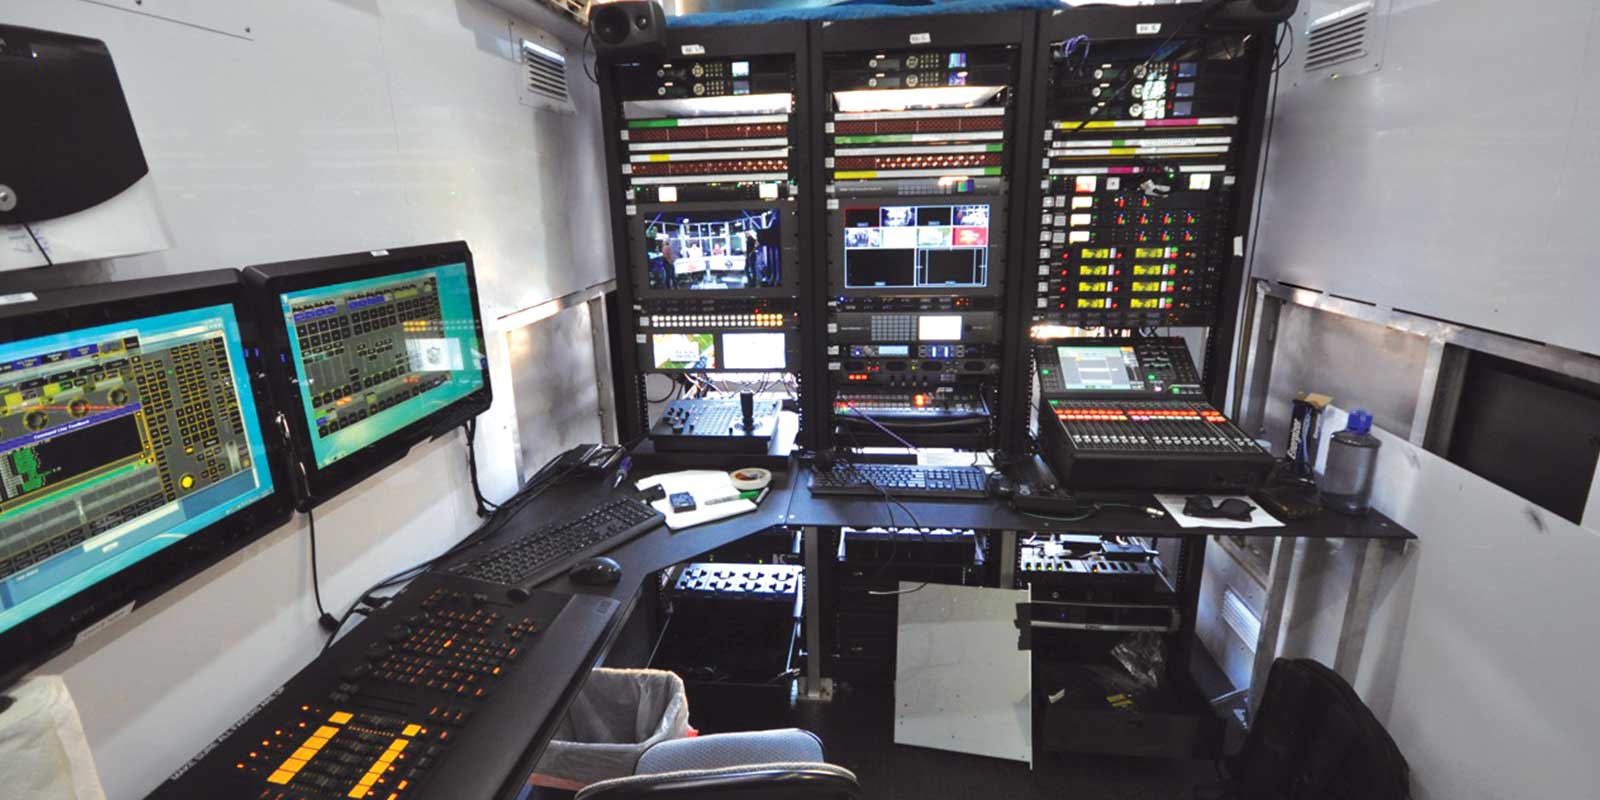 MOBILE COMMAND CENTERS